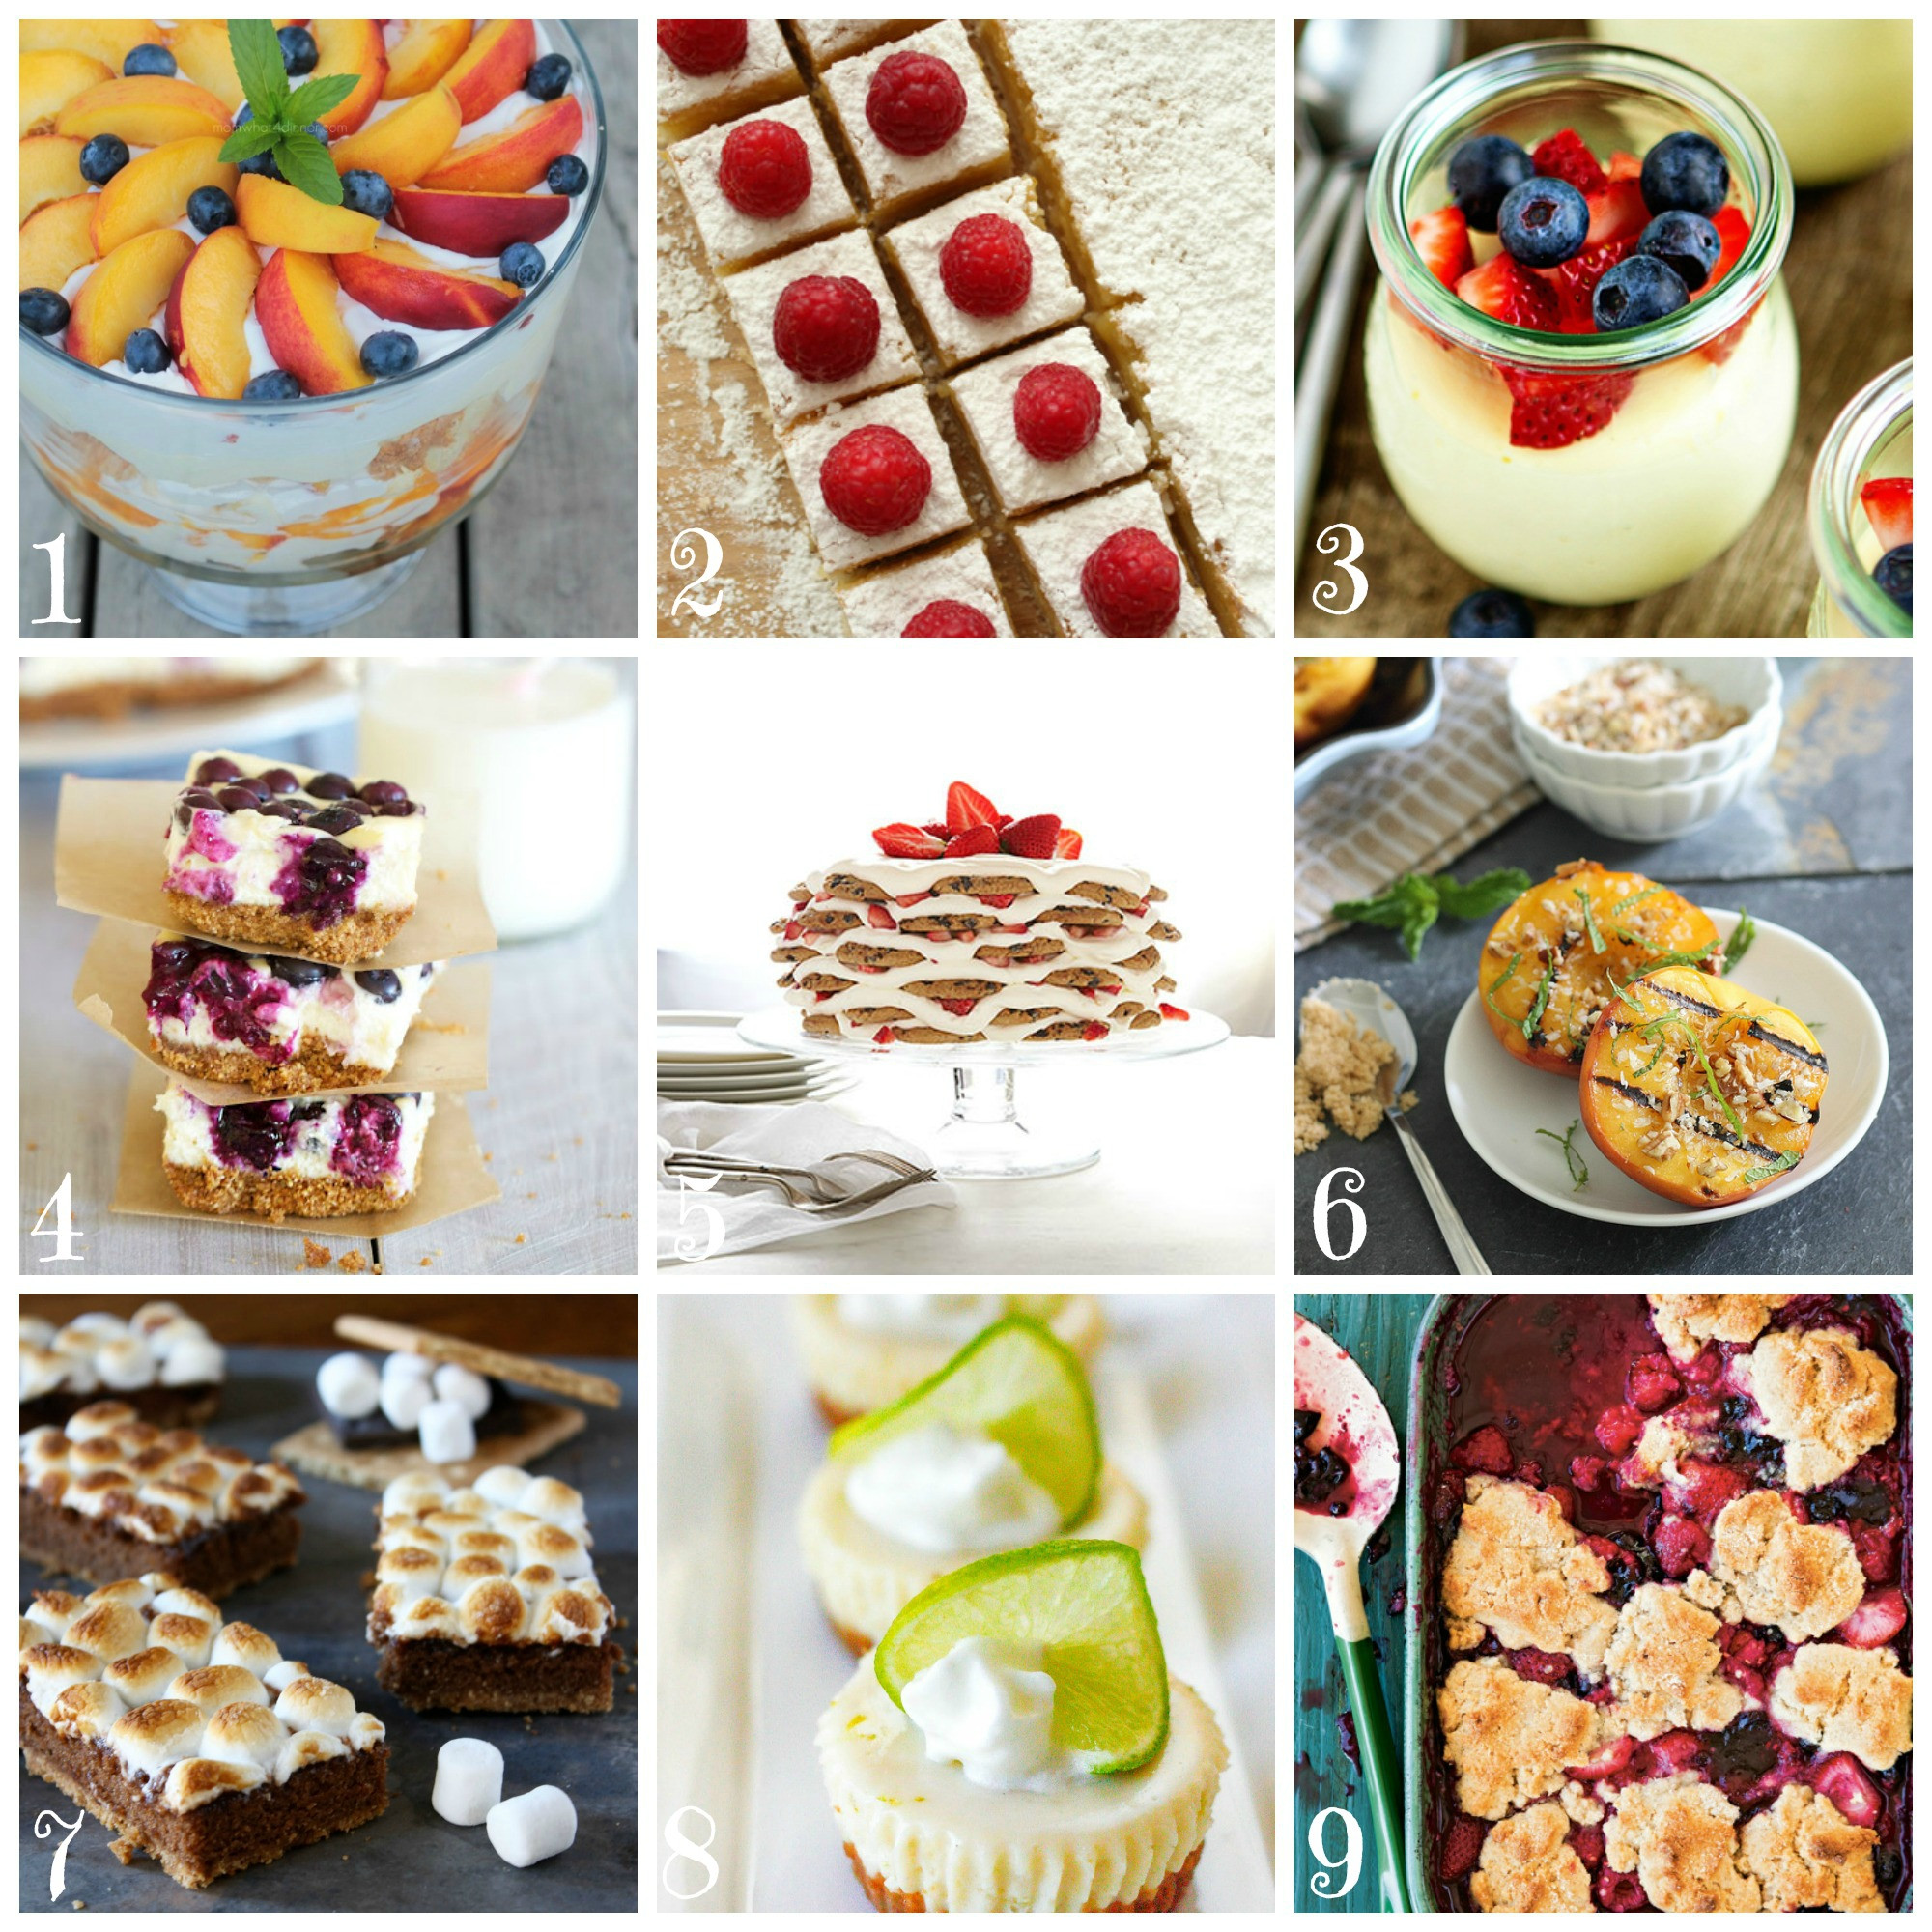 End Of Summer Desserts  Best Summer Dessert Recipes • CakeJournal